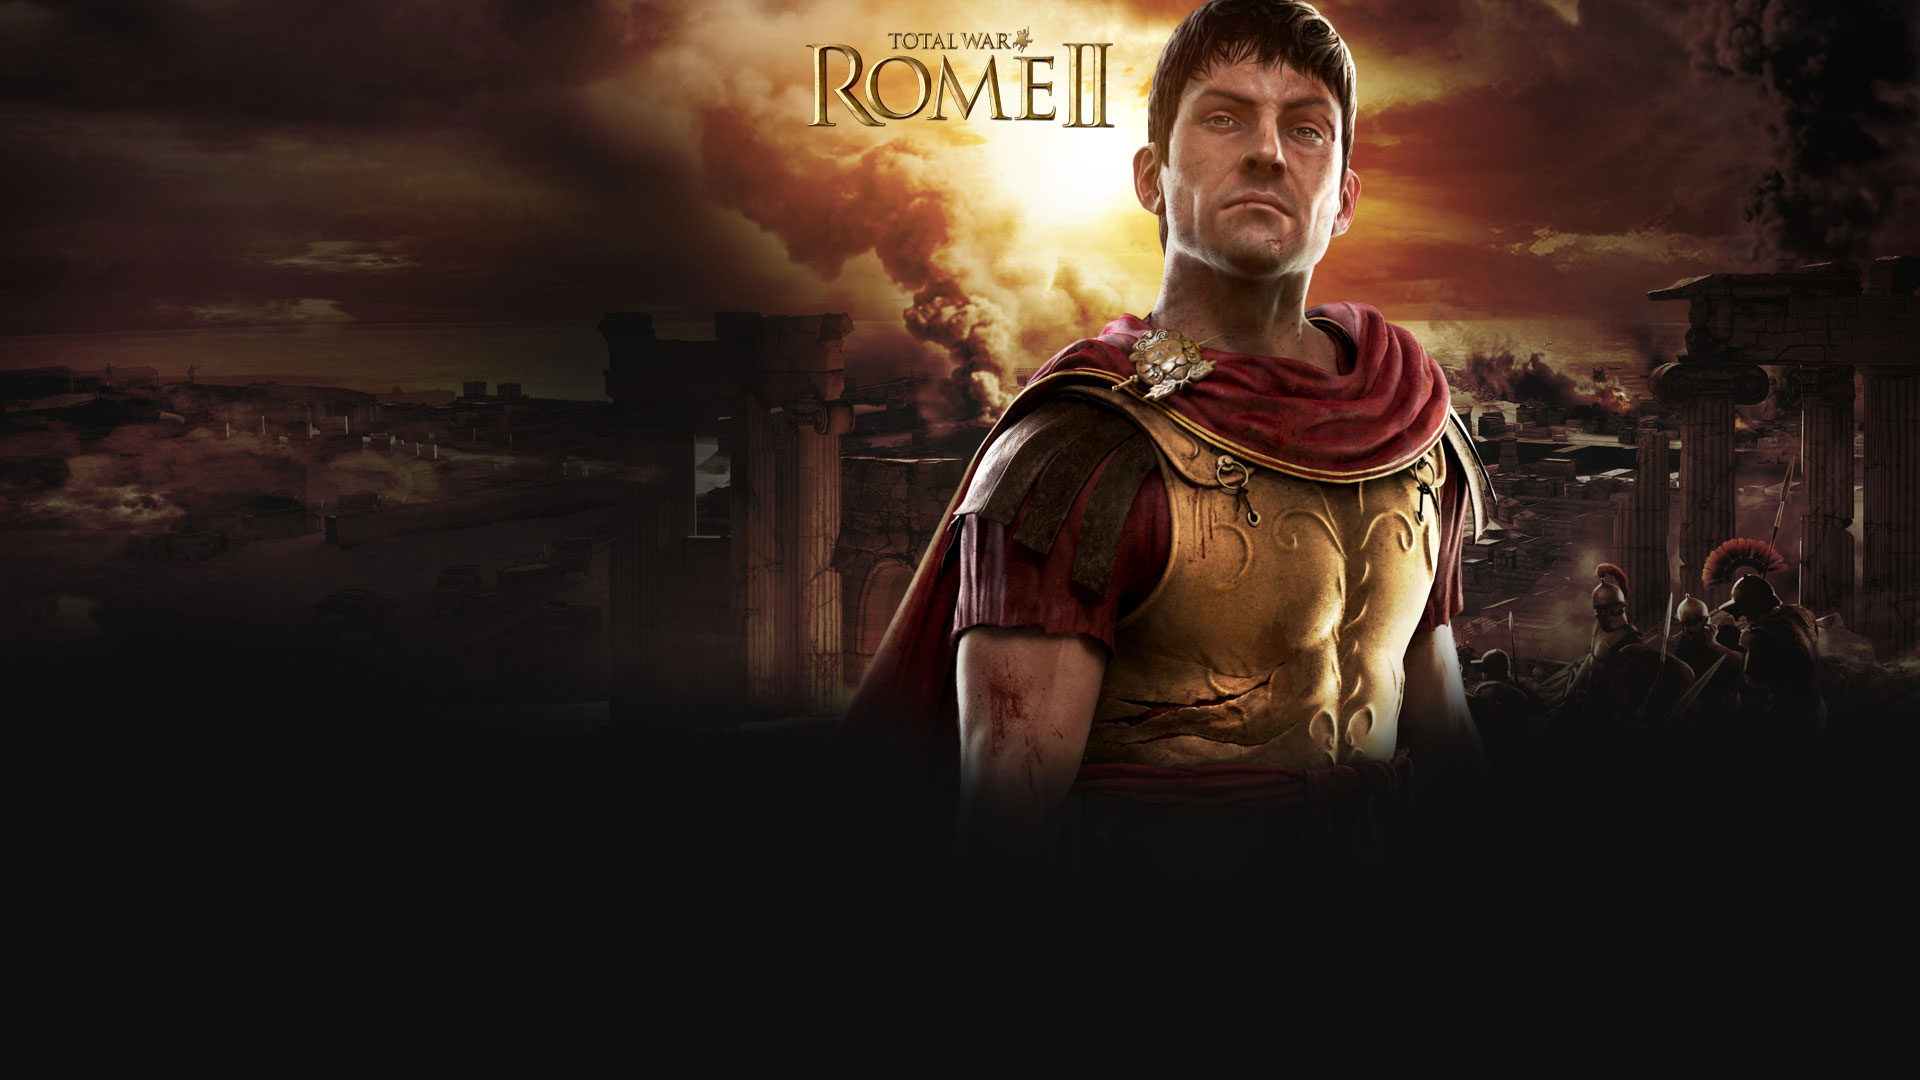 2013 Total War Rome 2 Game 382.89 Kb